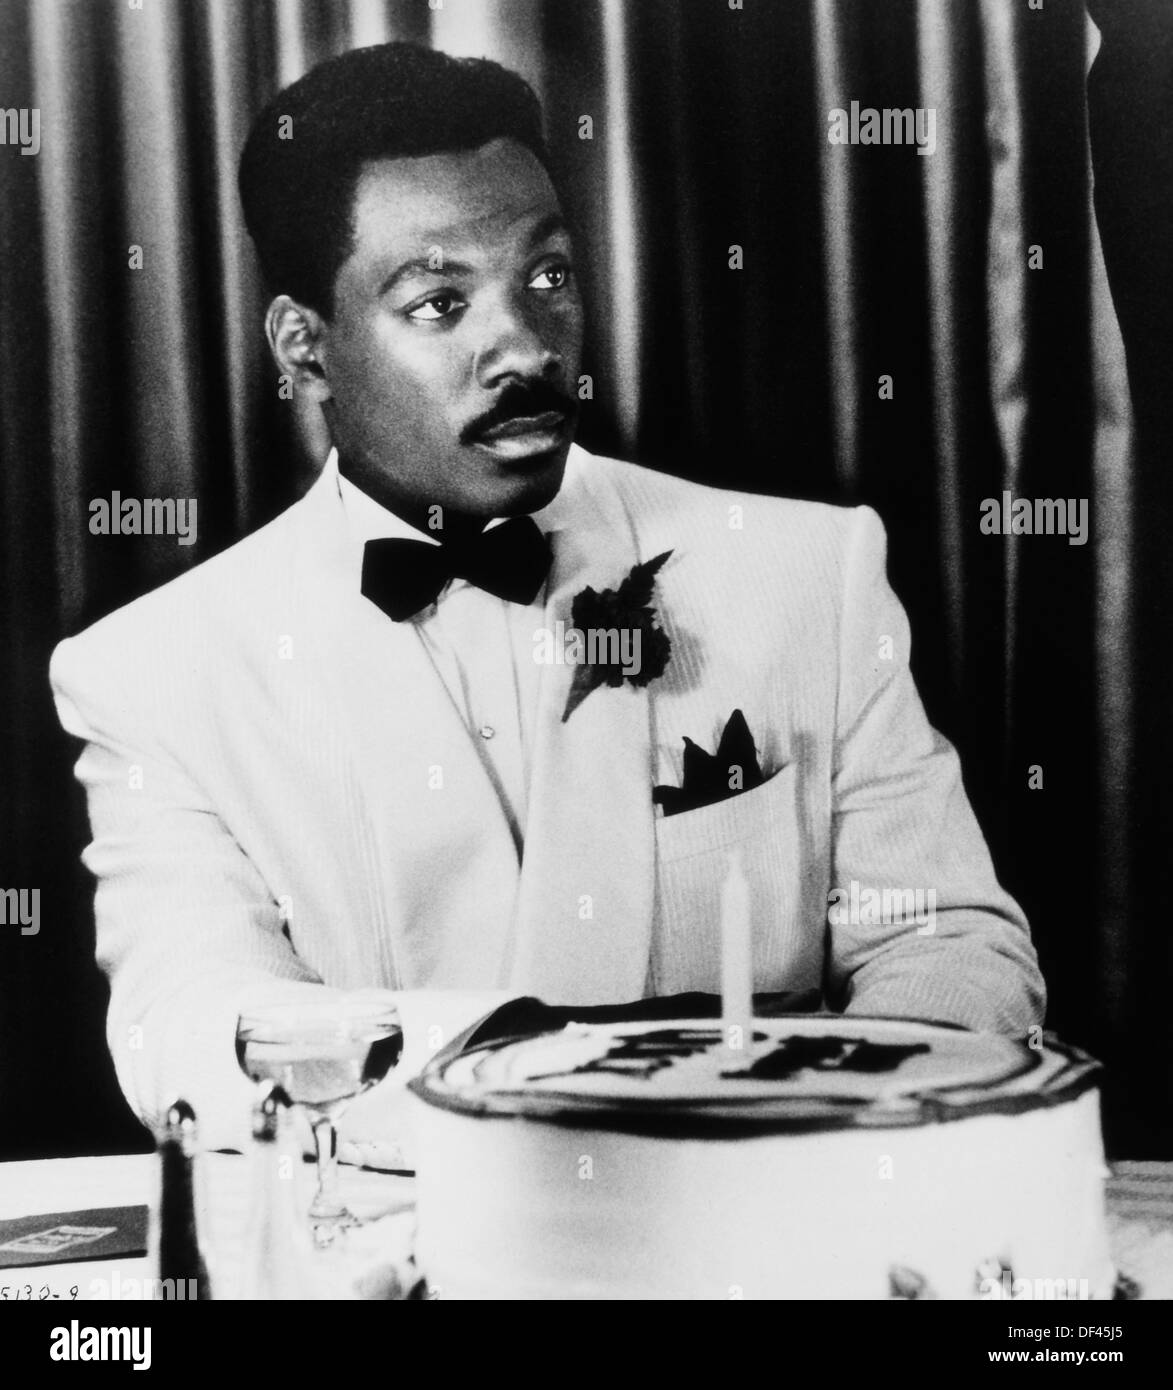 "Eddie Murphy, sul set del film ""Harlem Nights', Eddie Murphy Productions, Paramount Pictures, 1989 Immagini Stock"